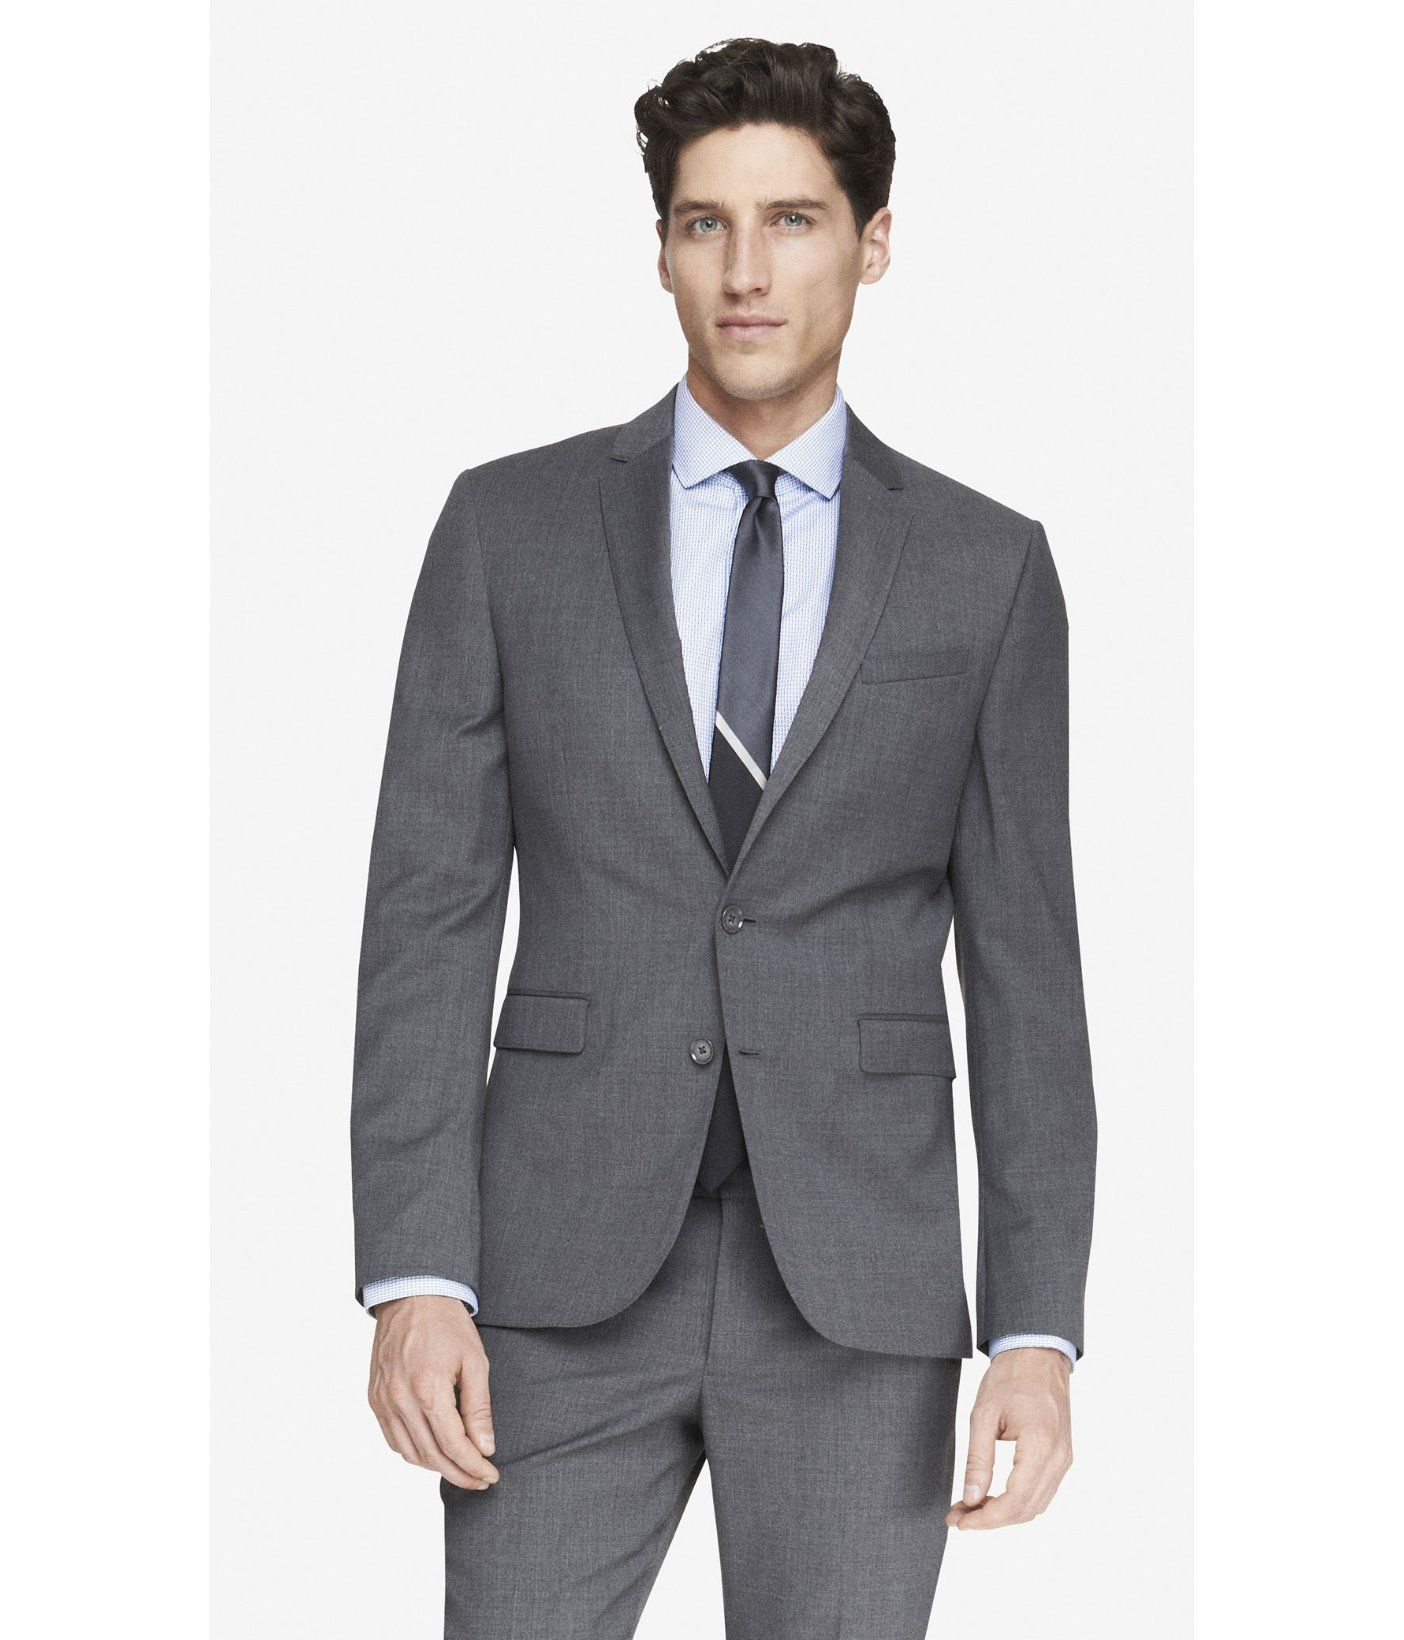 express extra slim innovator micro twill gray suit jacket ...